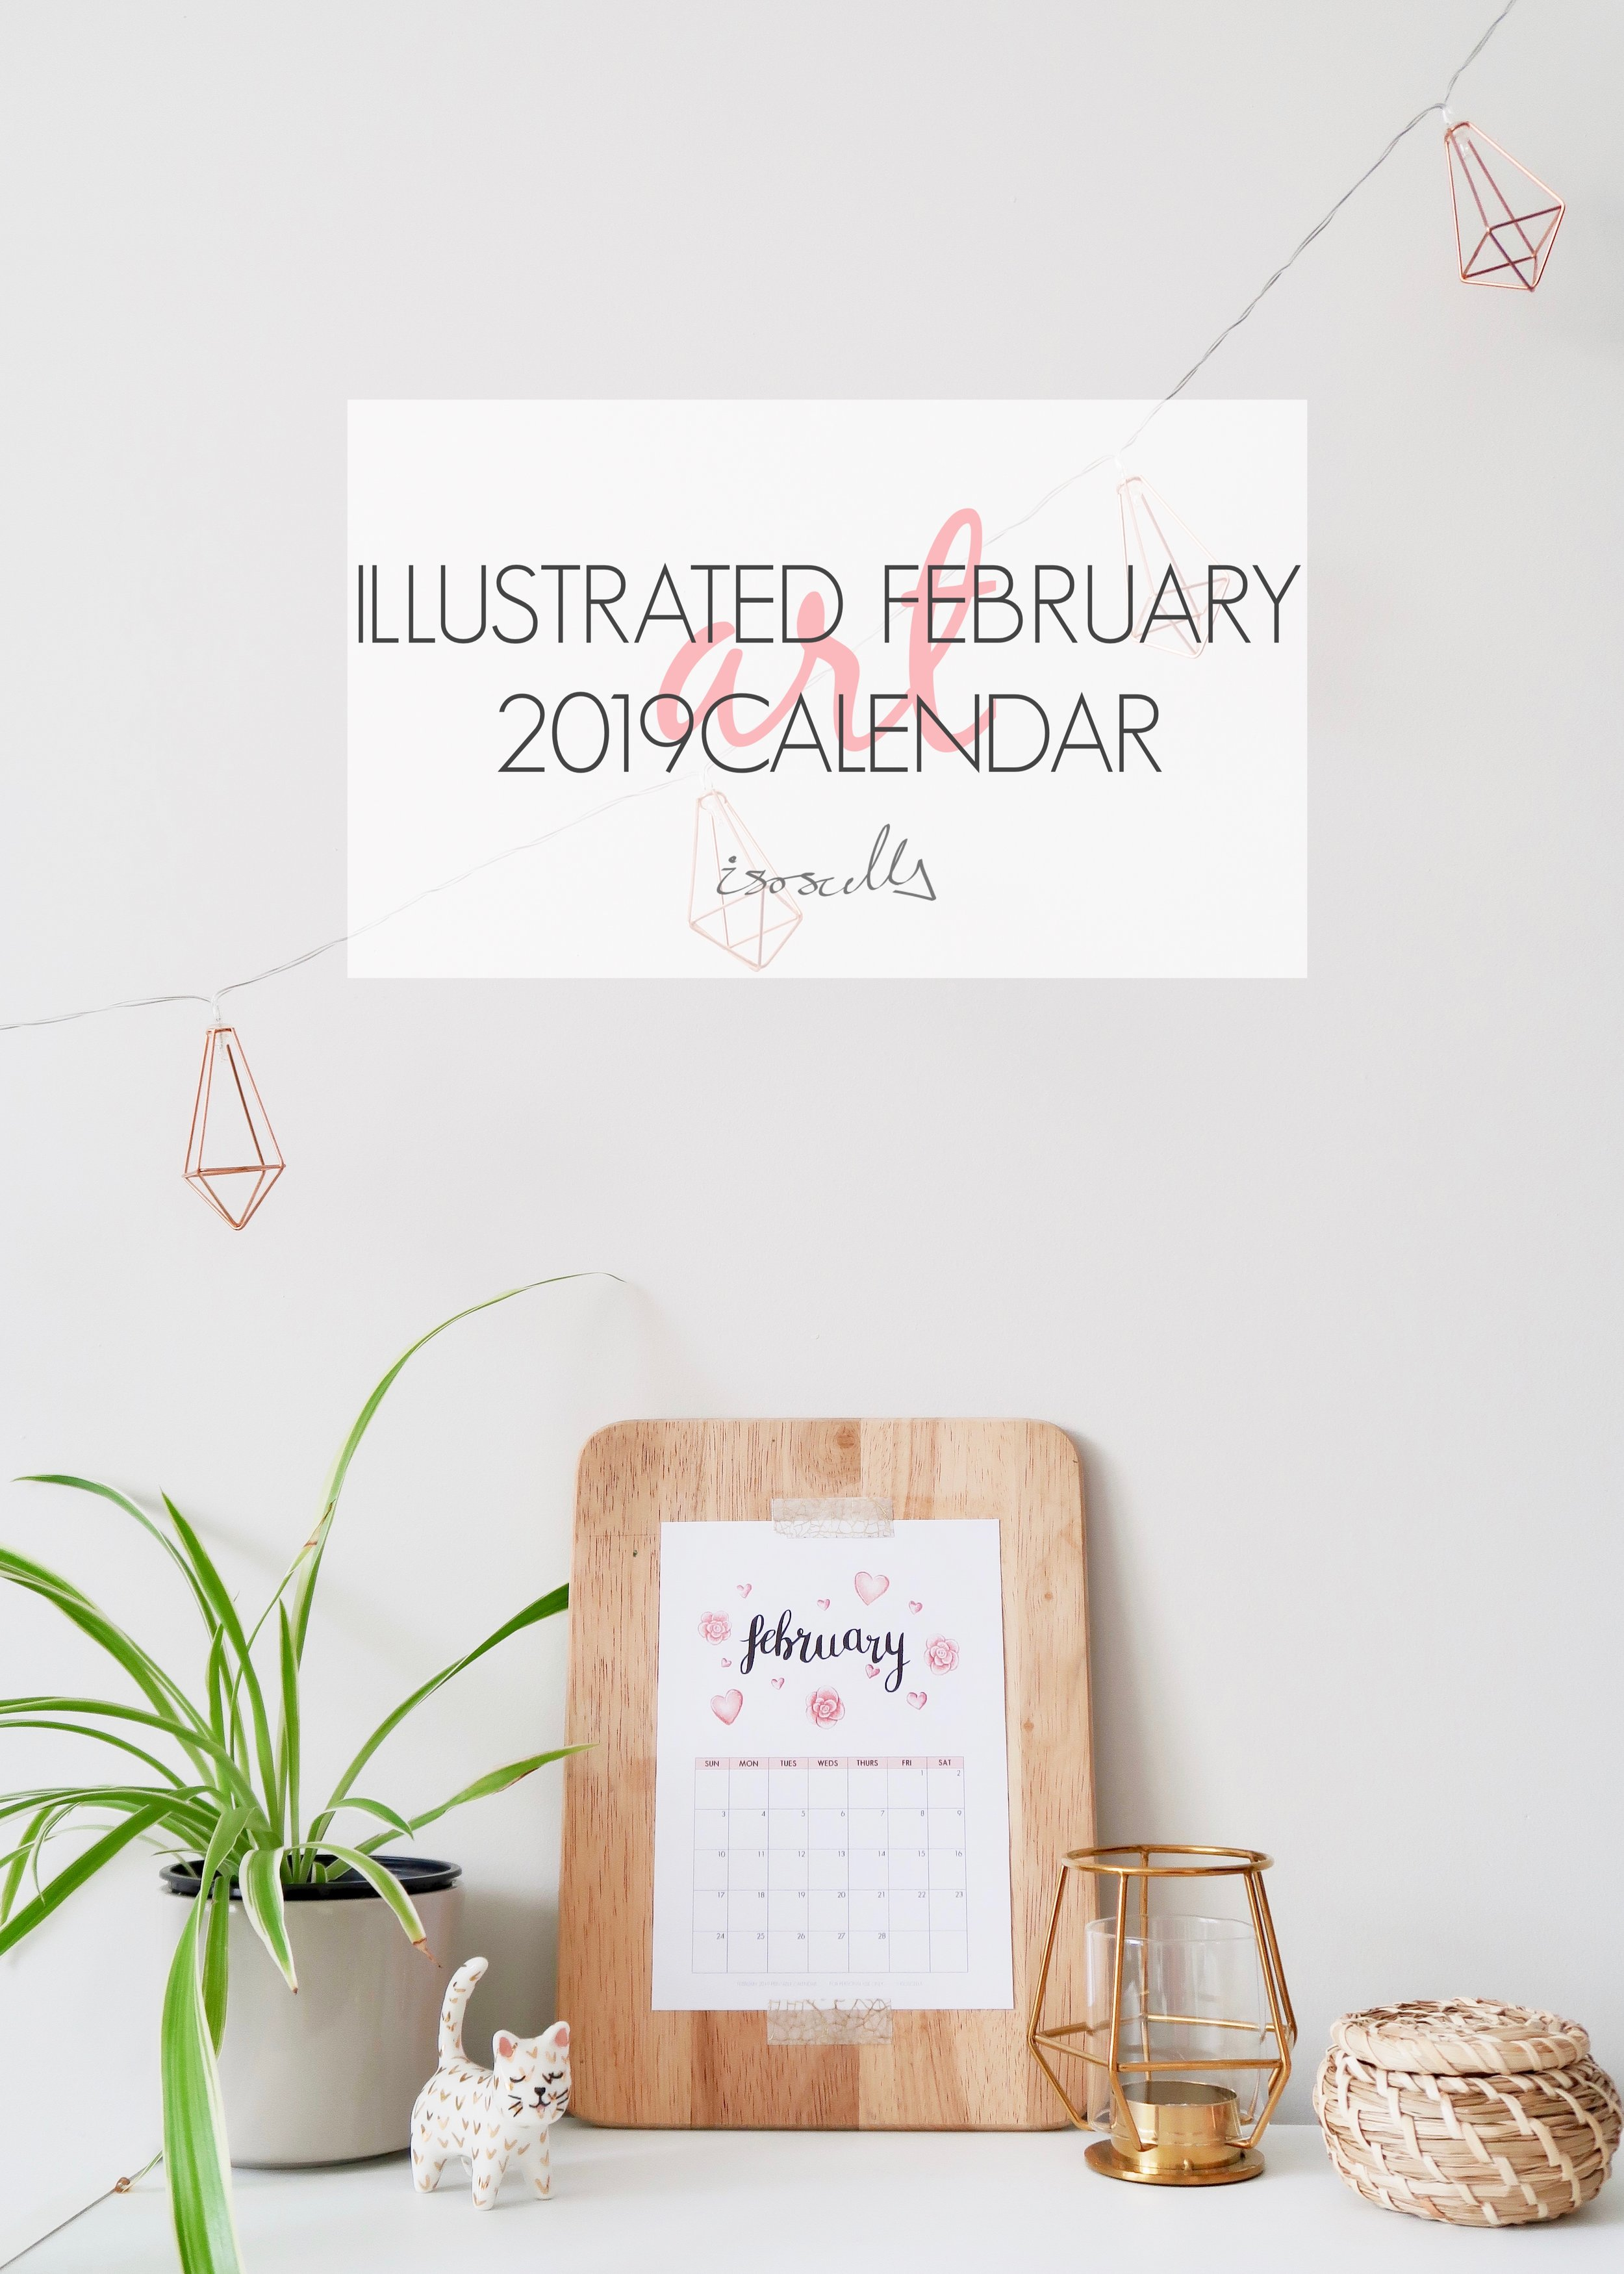 Illustrated February 2019 Calendar by Isoscella